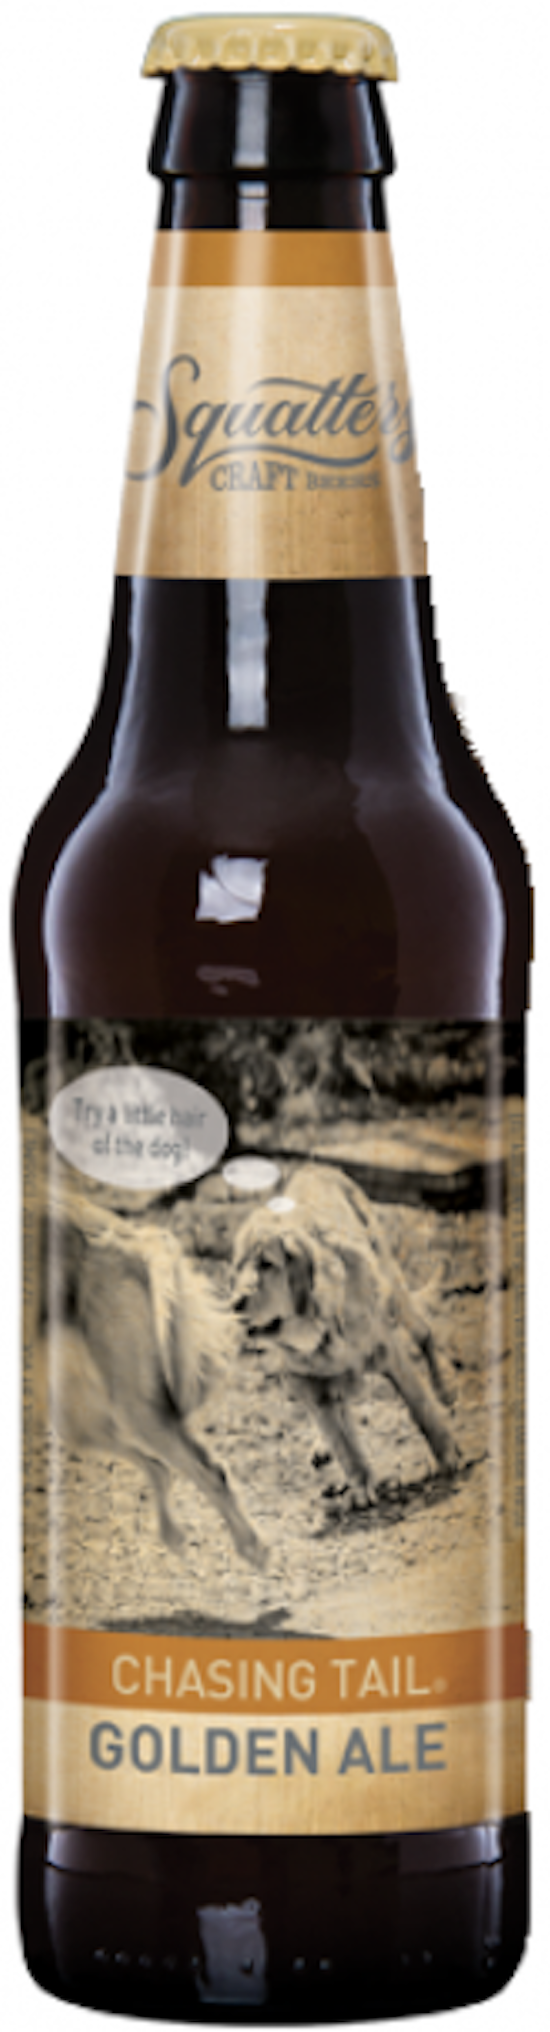 squatters-craft-beers-chasing-tail-golden-ale_1466530034